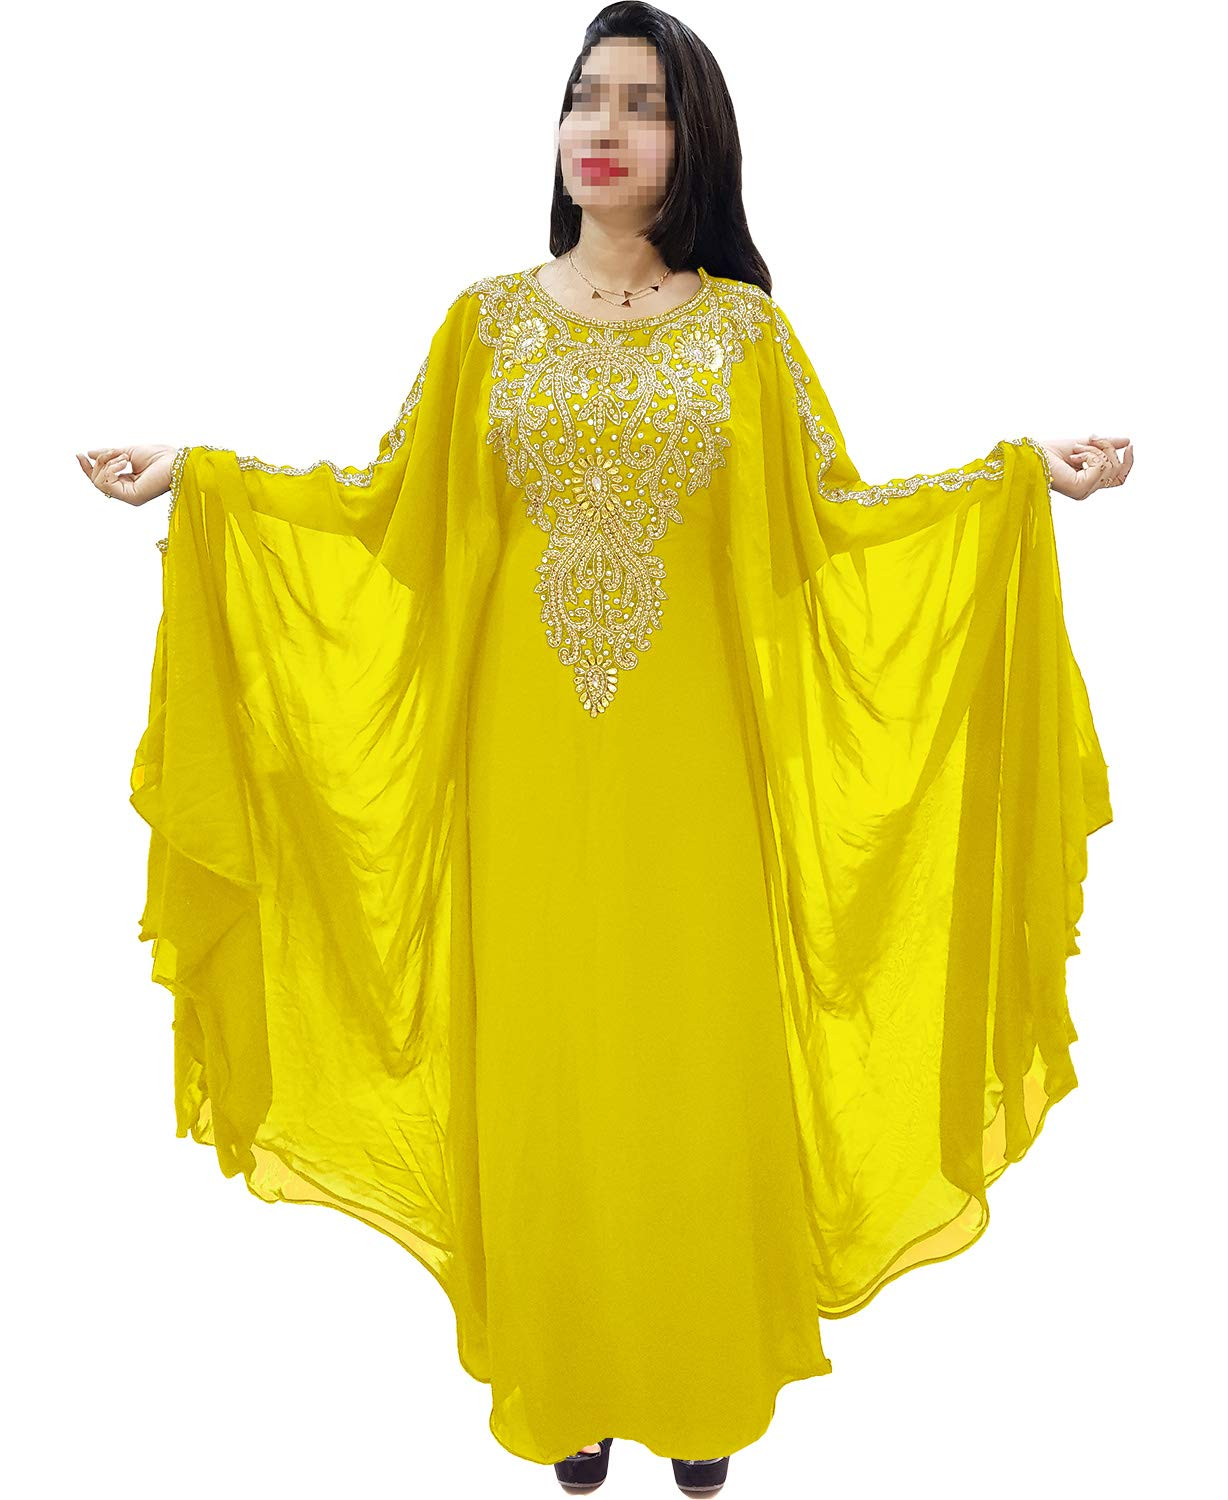 African Boutique Dubai Kaftan for Women Beads Work Maxi Dress Gown Formal Chiffon African Wear Yellow by African Boutique (Image #1)